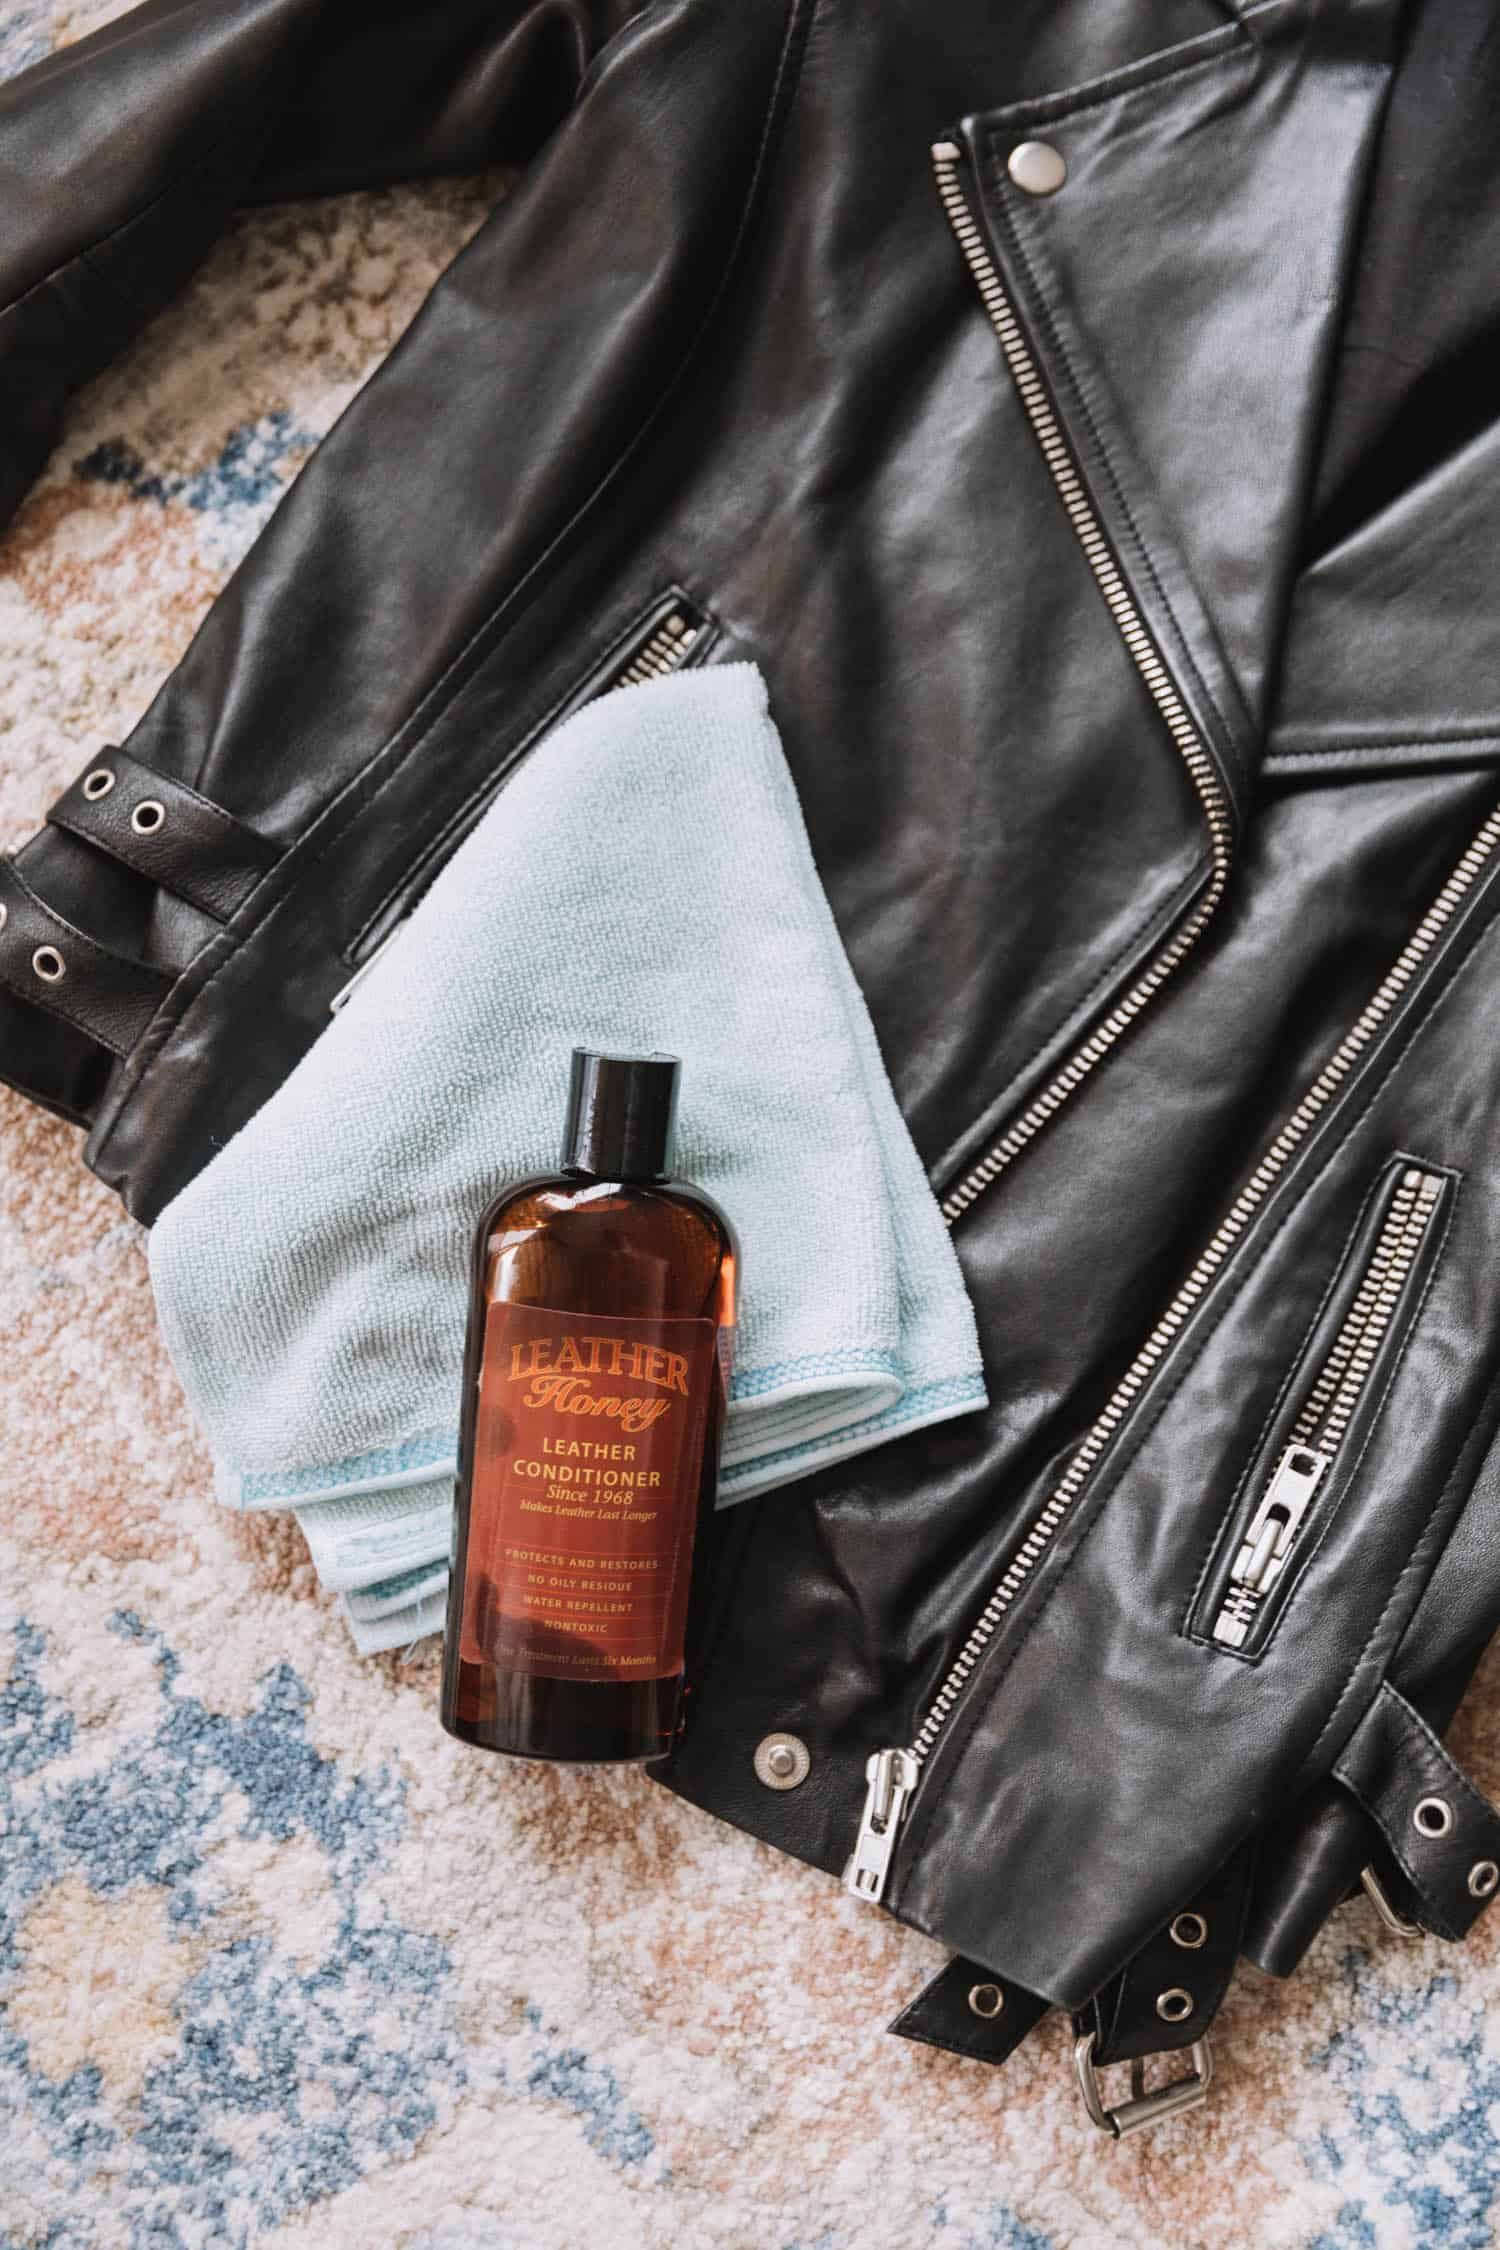 How to Condition A Leather Jacket